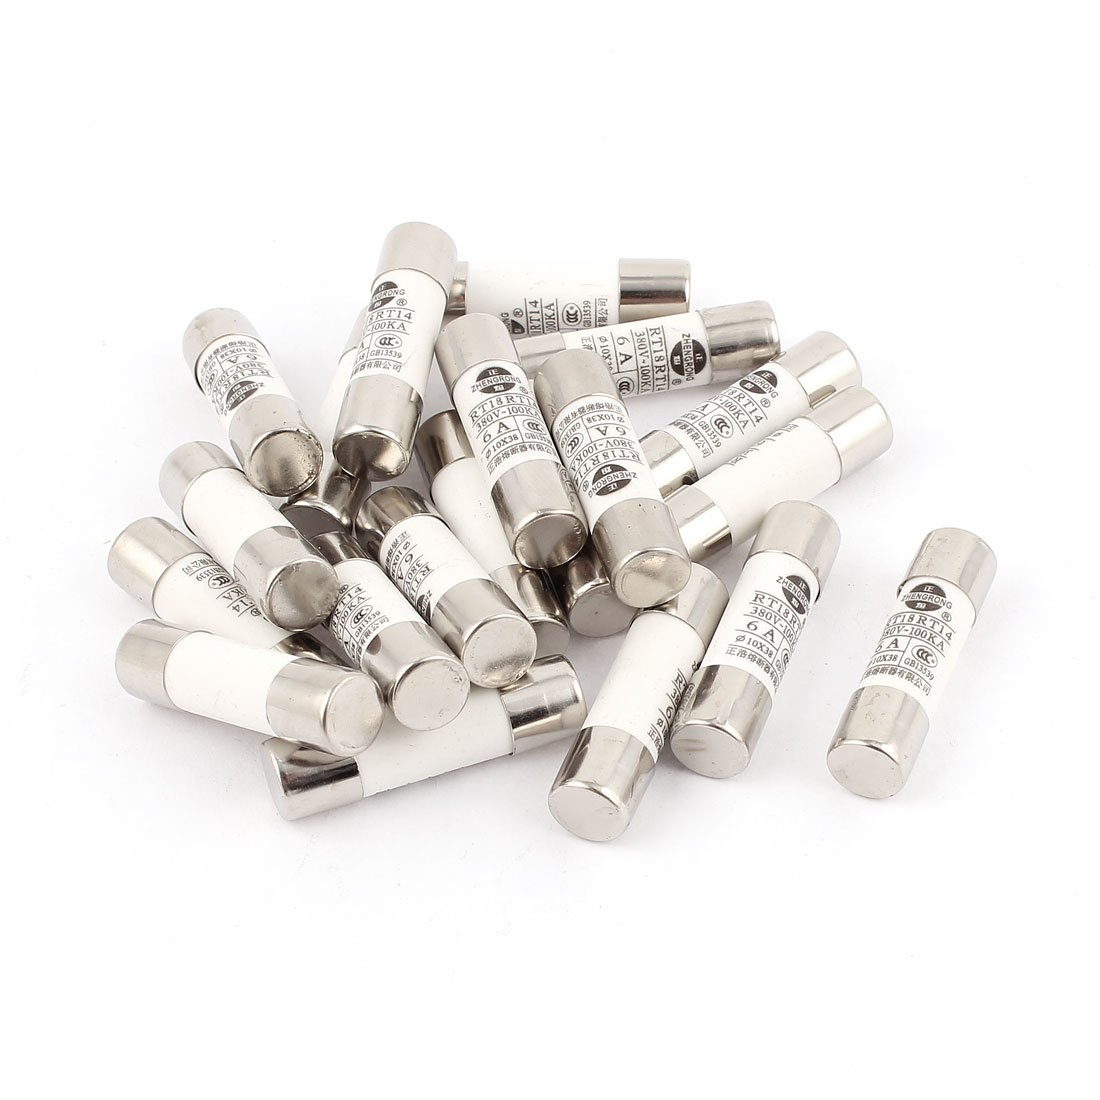 20 Pcs RO15 RT18 RT14 Ceramic Cylindrical Tube Fuse 6A 380V 10x38mm